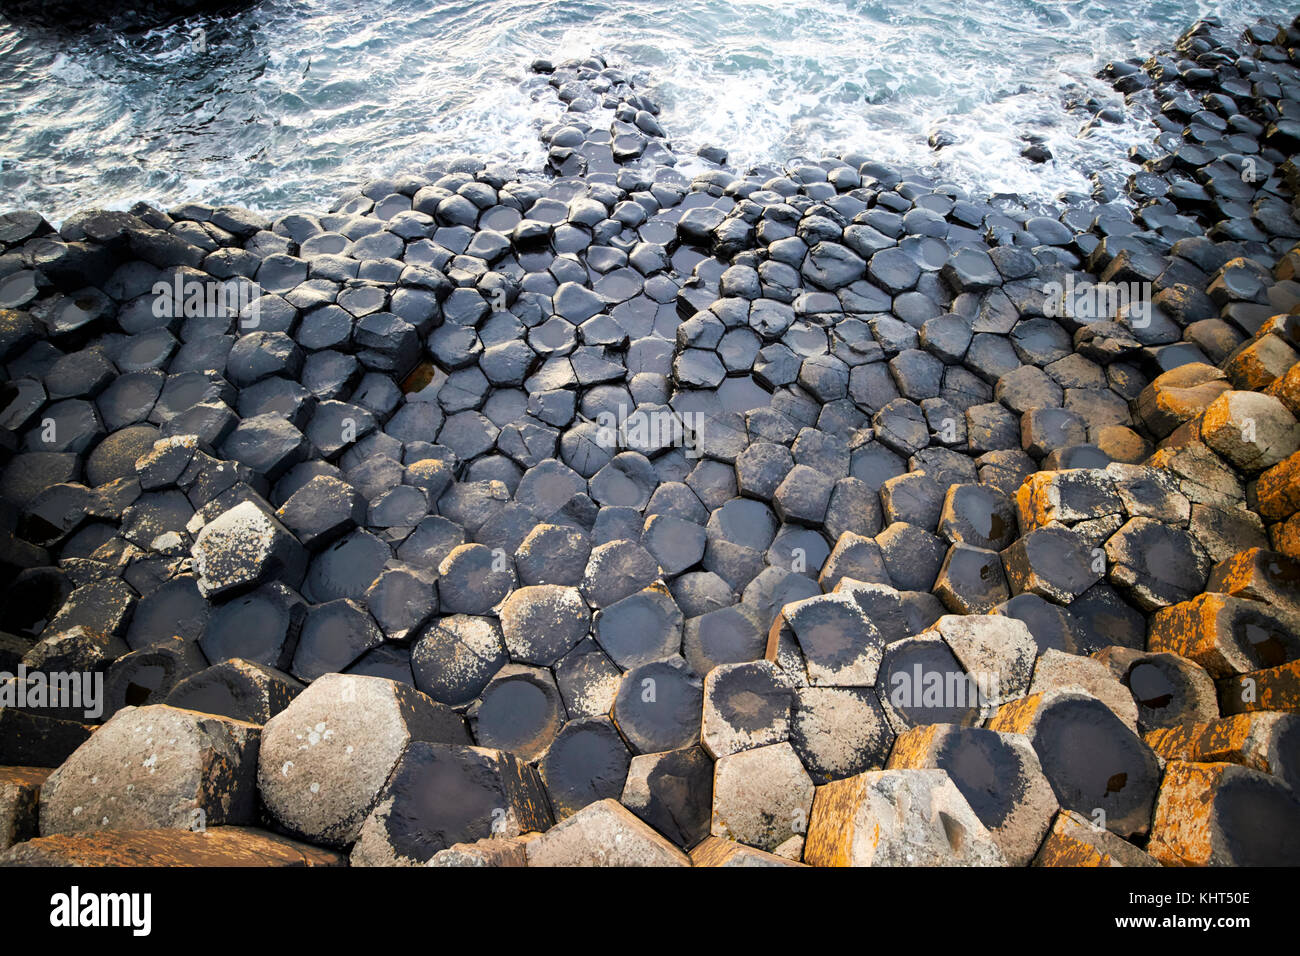 rocks below the waterline at Giants Causeway county antrim northern ireland uk - Stock Image